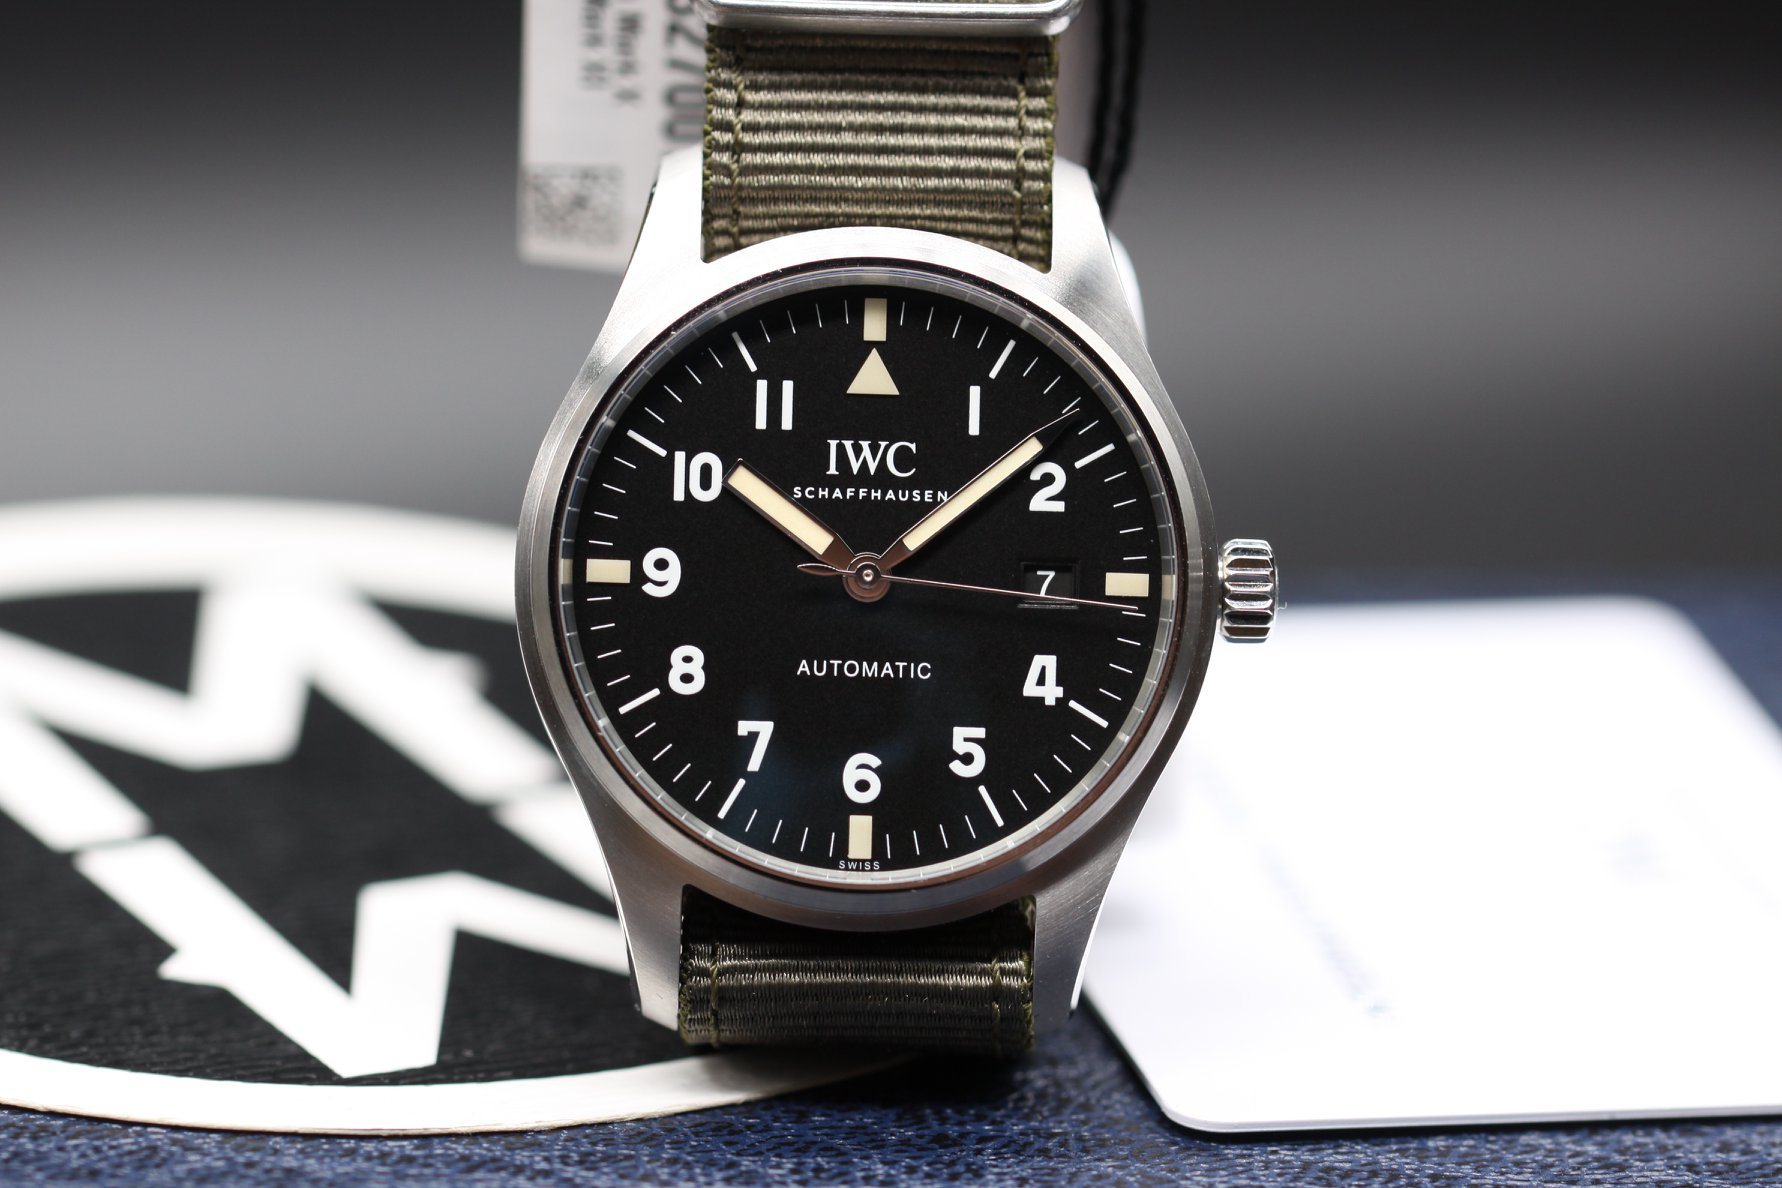 Iwc Replica Iwc Watches Go To The Desert Top Swiss Replica Watches